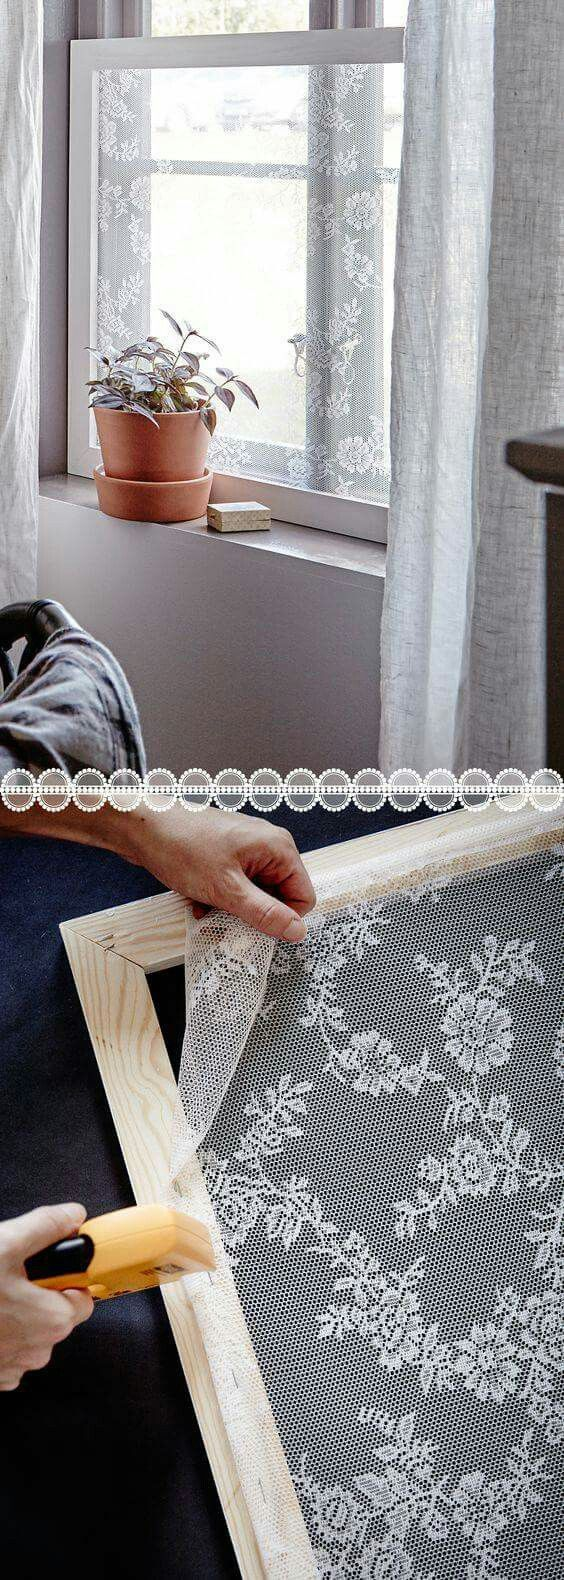 Window Screens Made From Lace Home Decor Home Projects Home